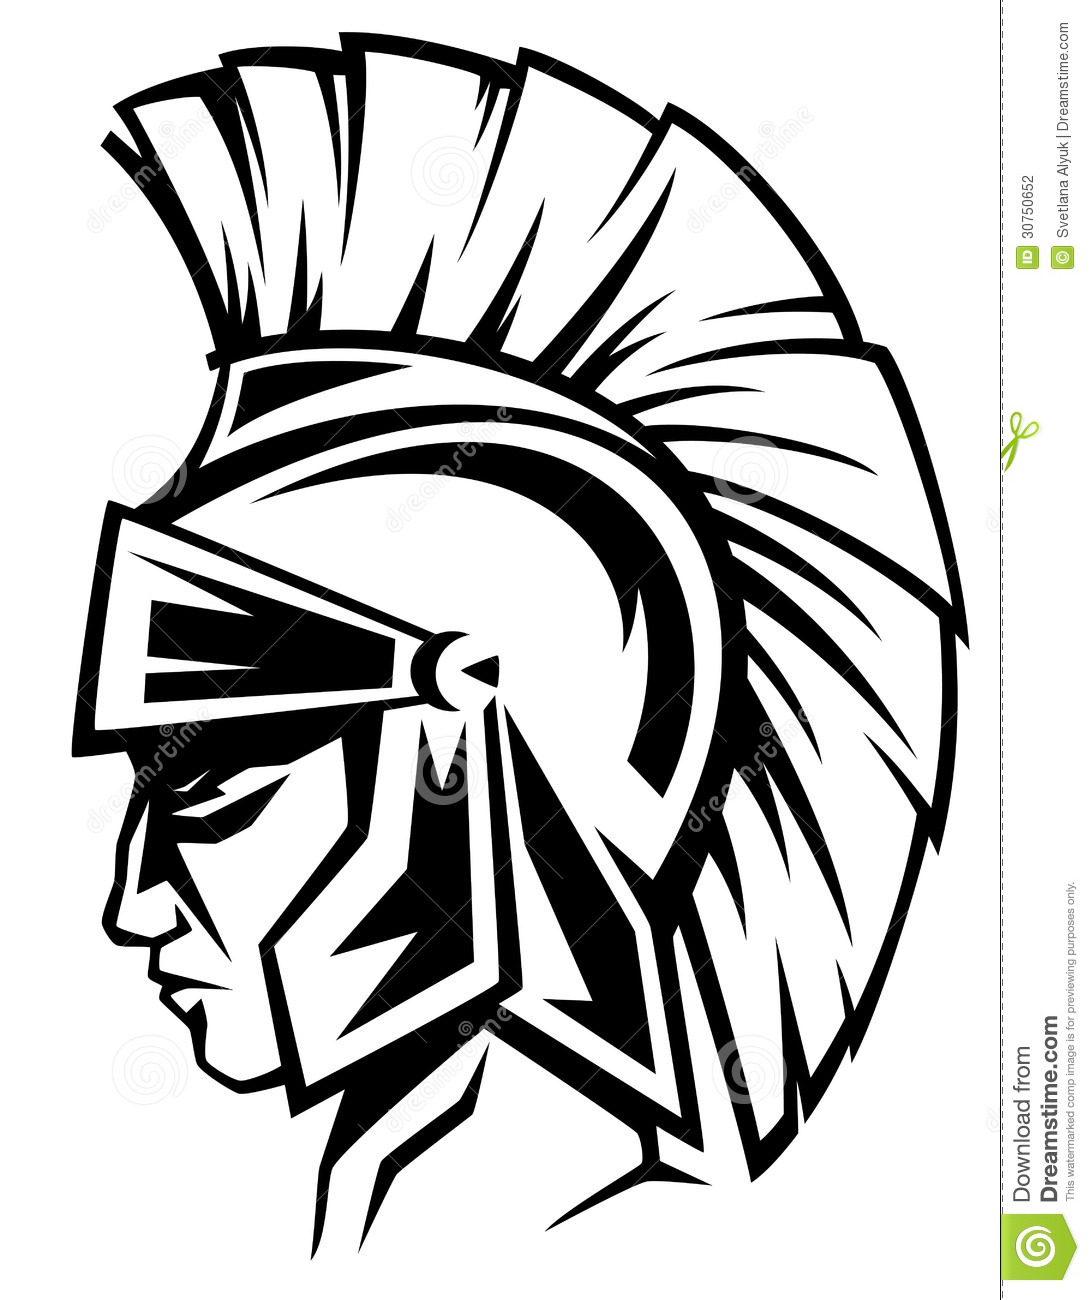 Spartan Warrior Black And White Profile   Ancient Soldier Wearing A